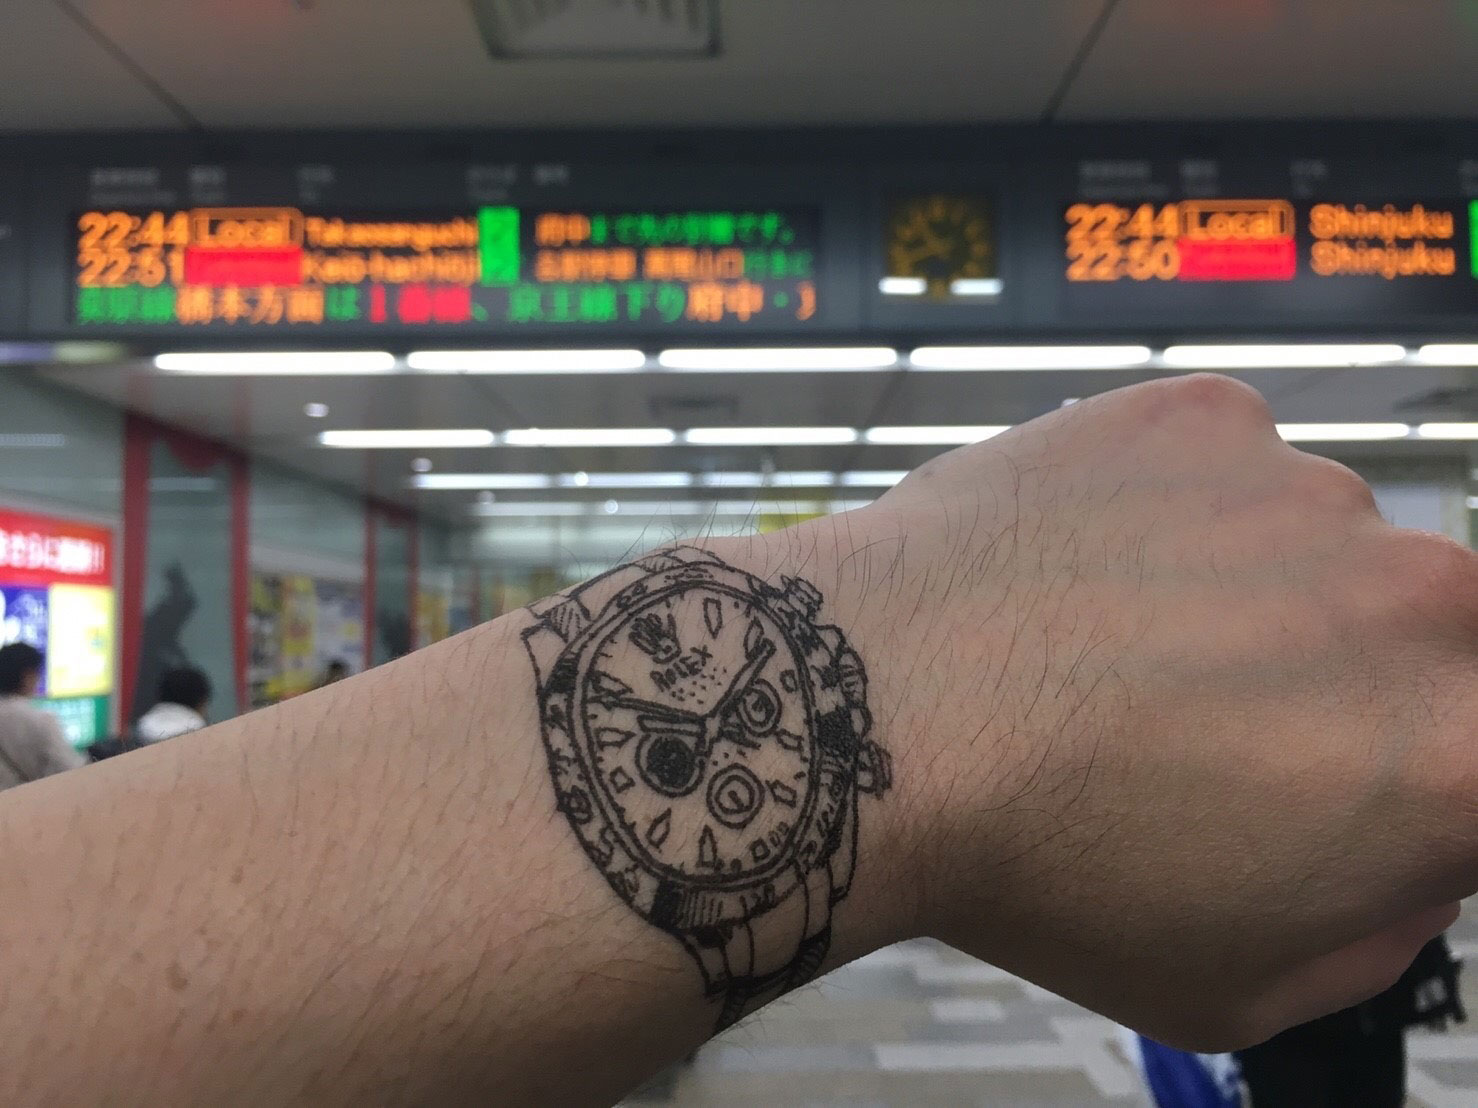 You Have a Rolex齋藤はぢめ